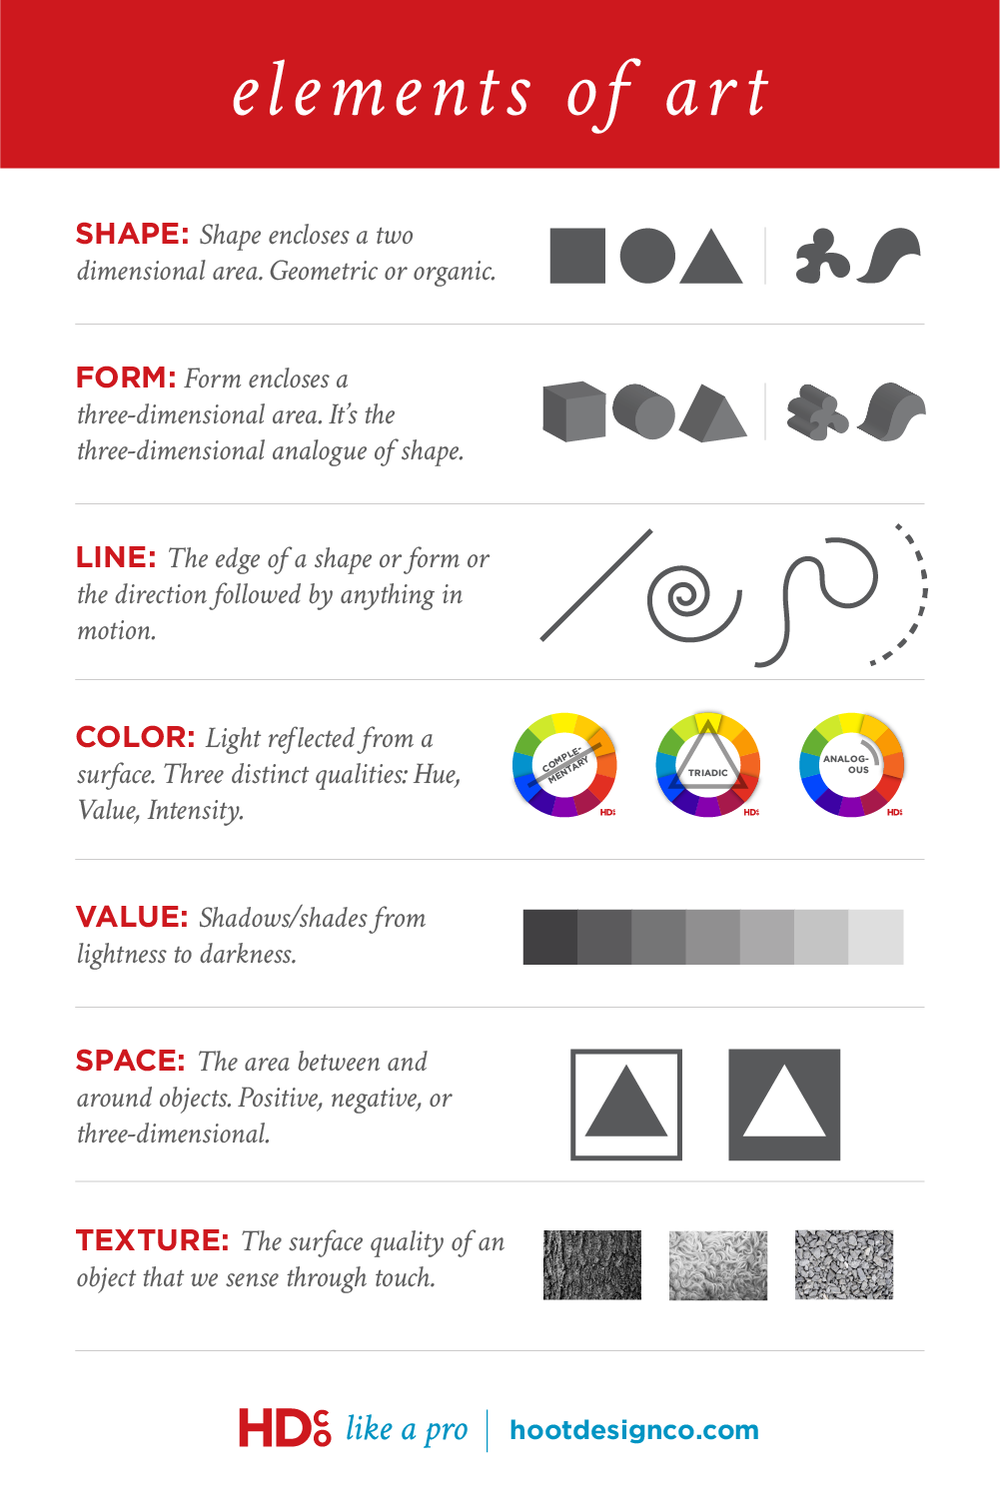 6 Elements Of Art : The elements of art hoot design co web